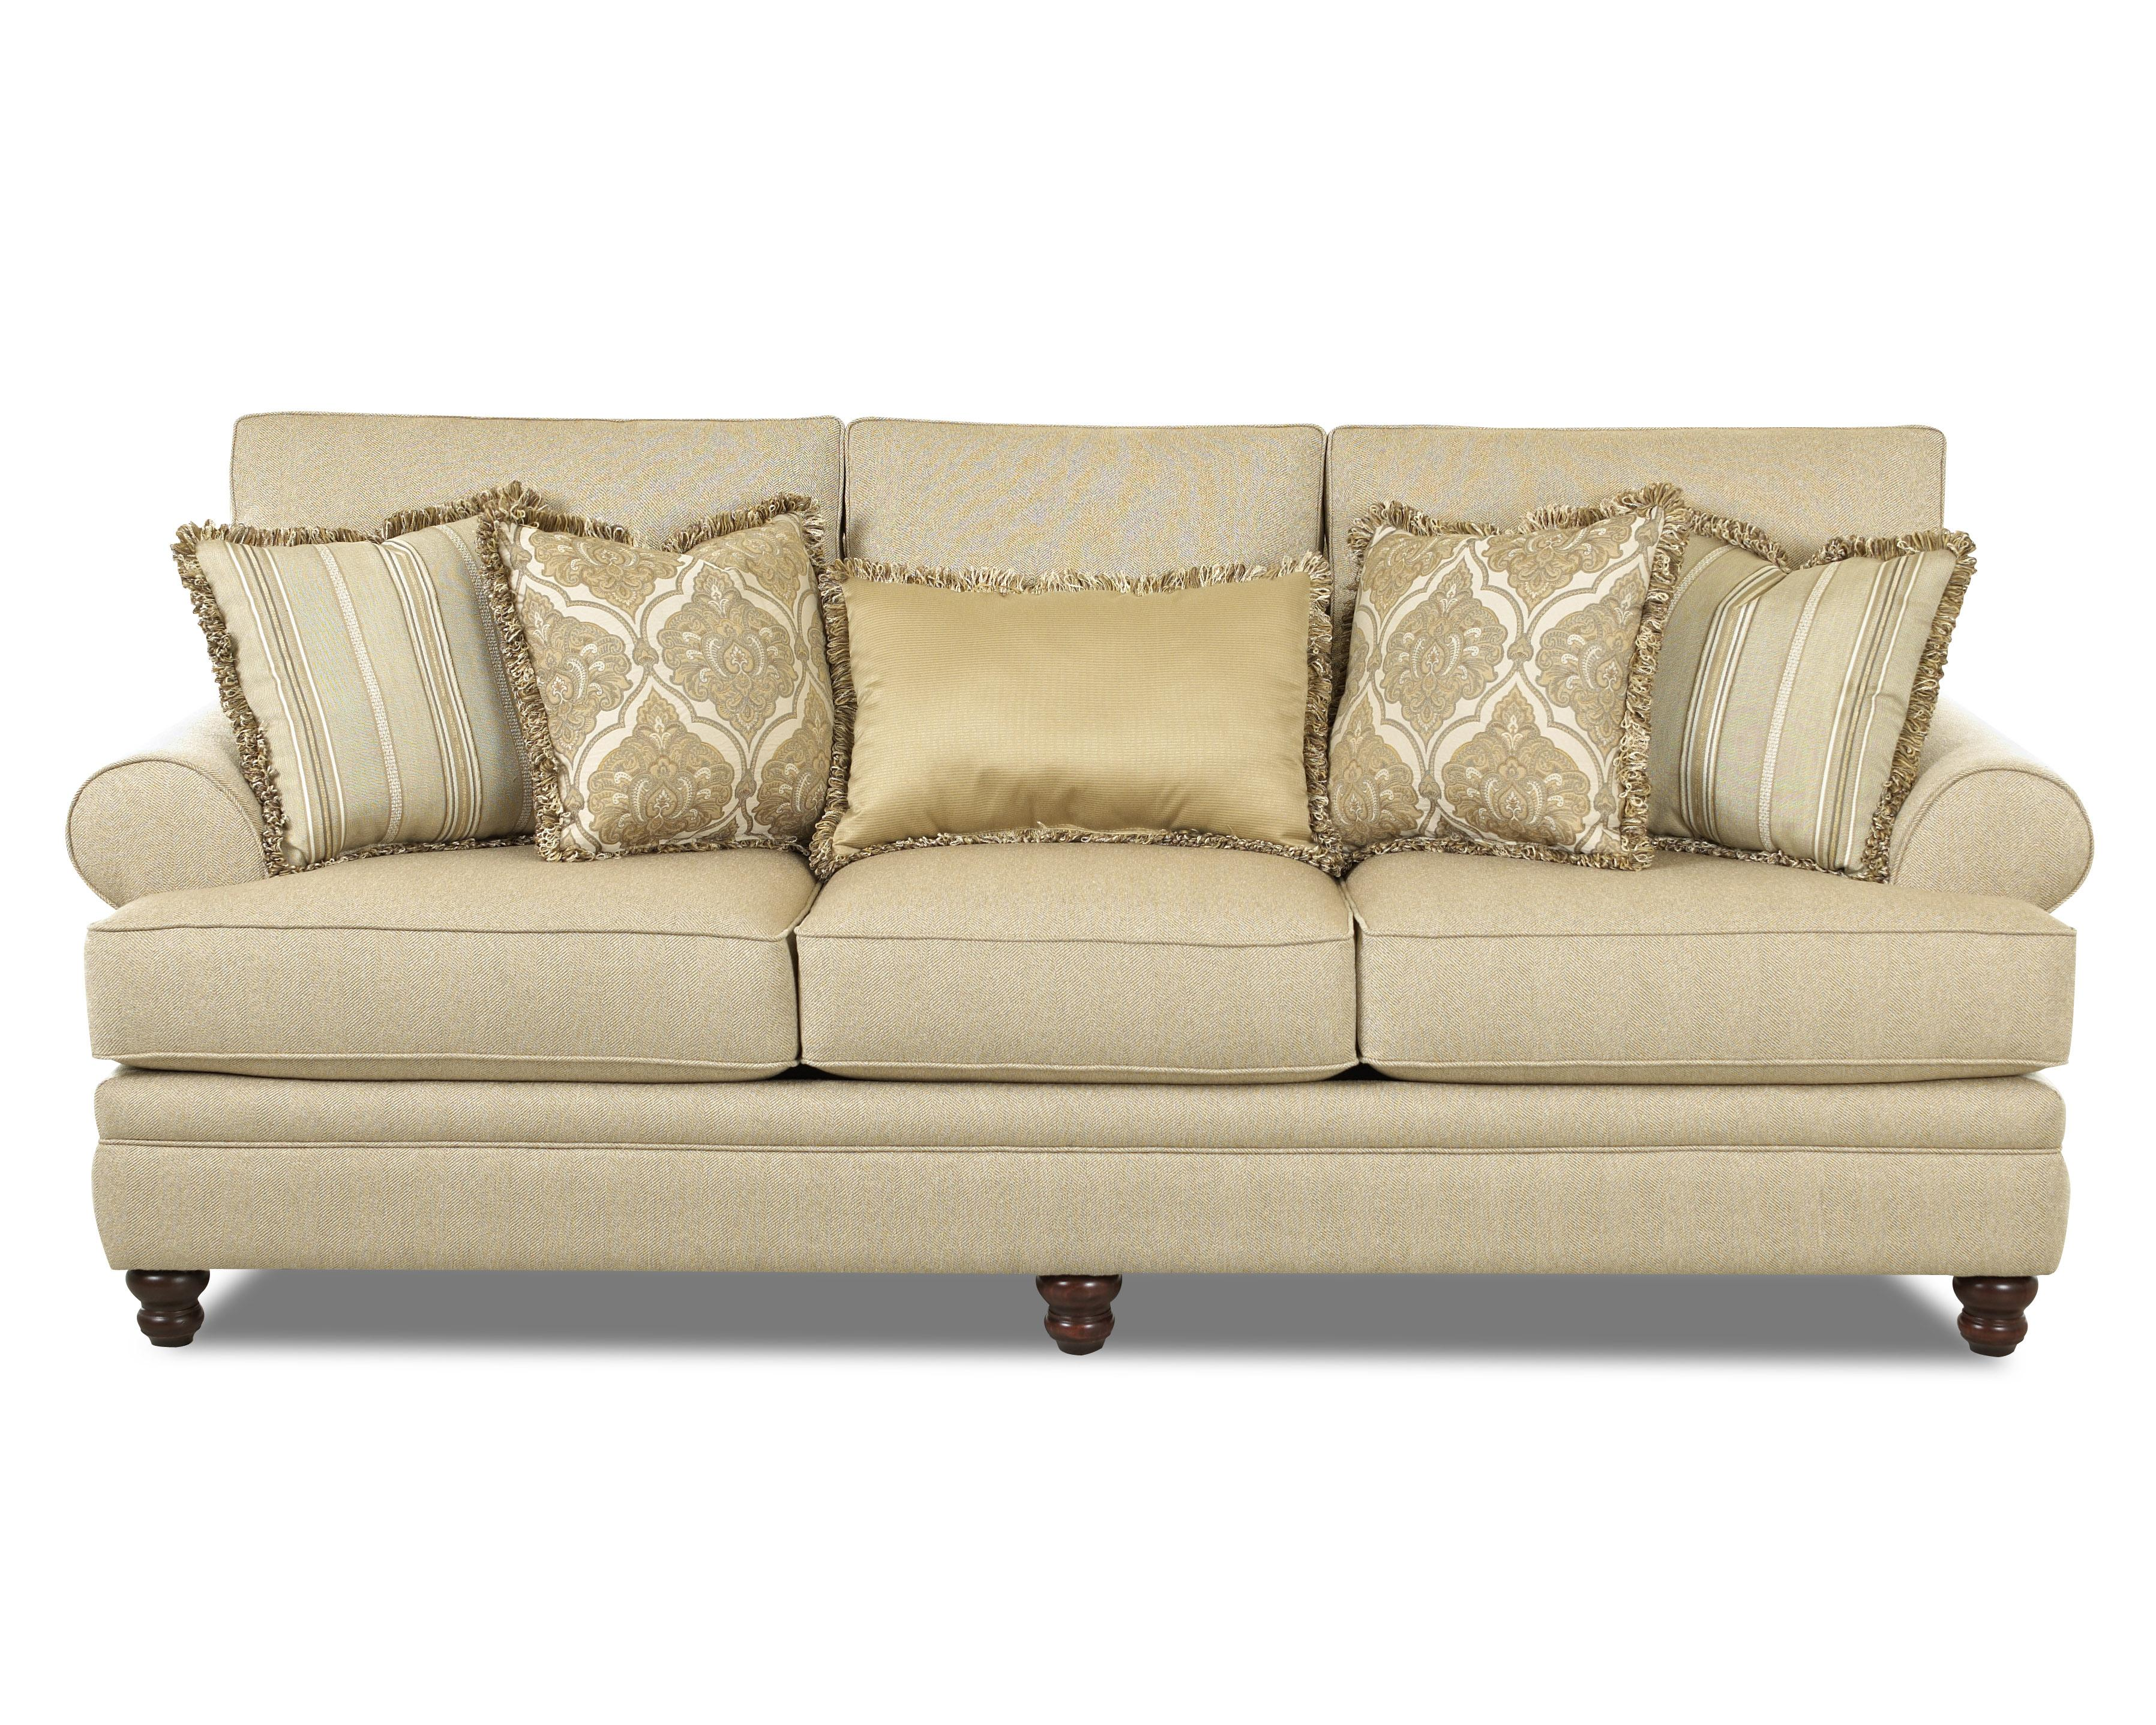 Klaussner Darcy Rolled Arm Sofa   Item Number: K33230F S